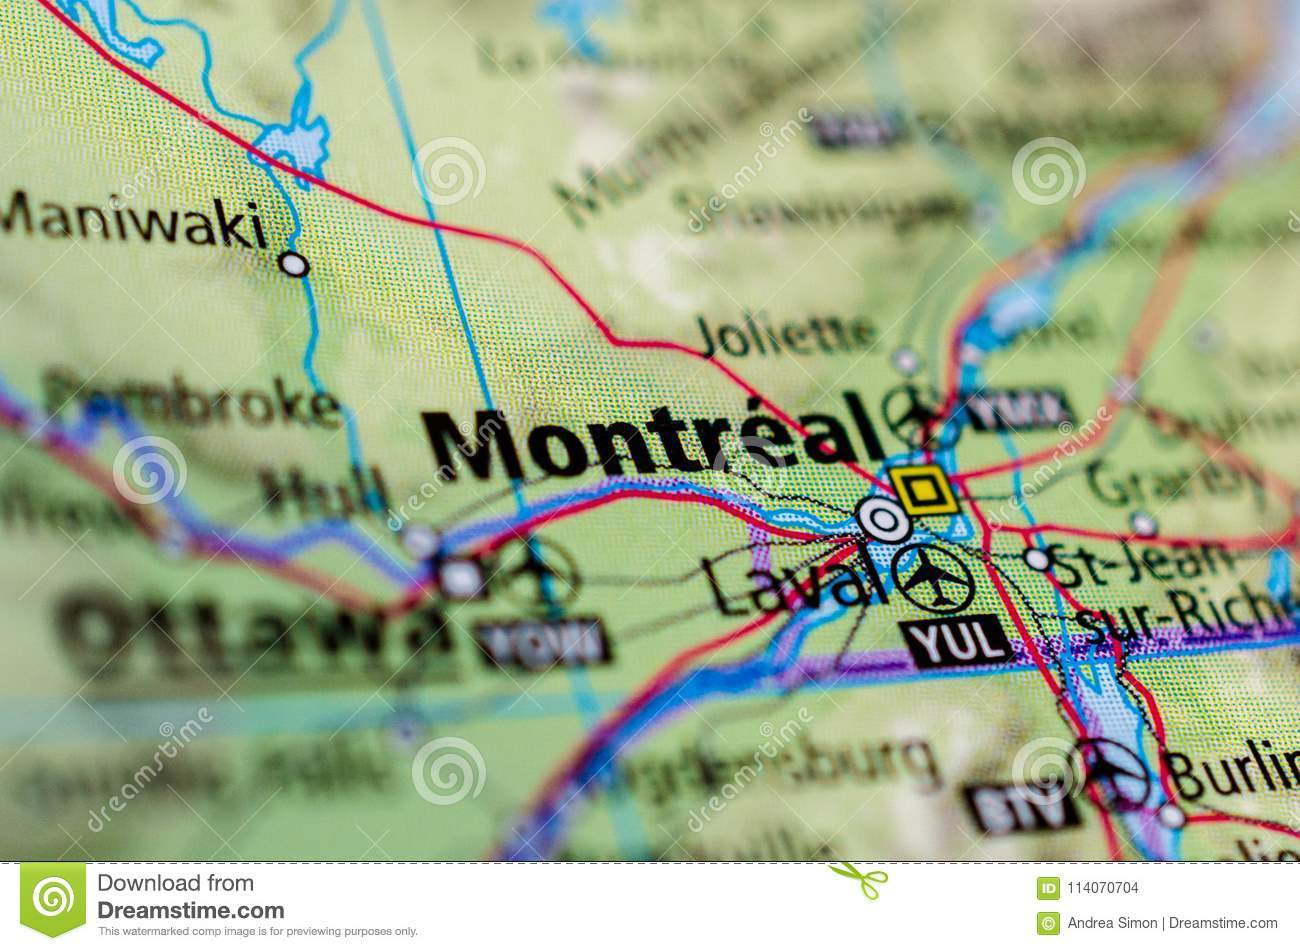 Montreal on map stock photo. Image of major, pages ... on montreal map, edmonton map, dakar map, canada map, rio grande river map, cairo map, ontario map, washington map, quebec map, rocky mountains map, valley falls map, yukon map, moscow map, north america map, sandoval map, bedford basin map, olathe northwest map, canadian shield map, minto map, saskatoon map,